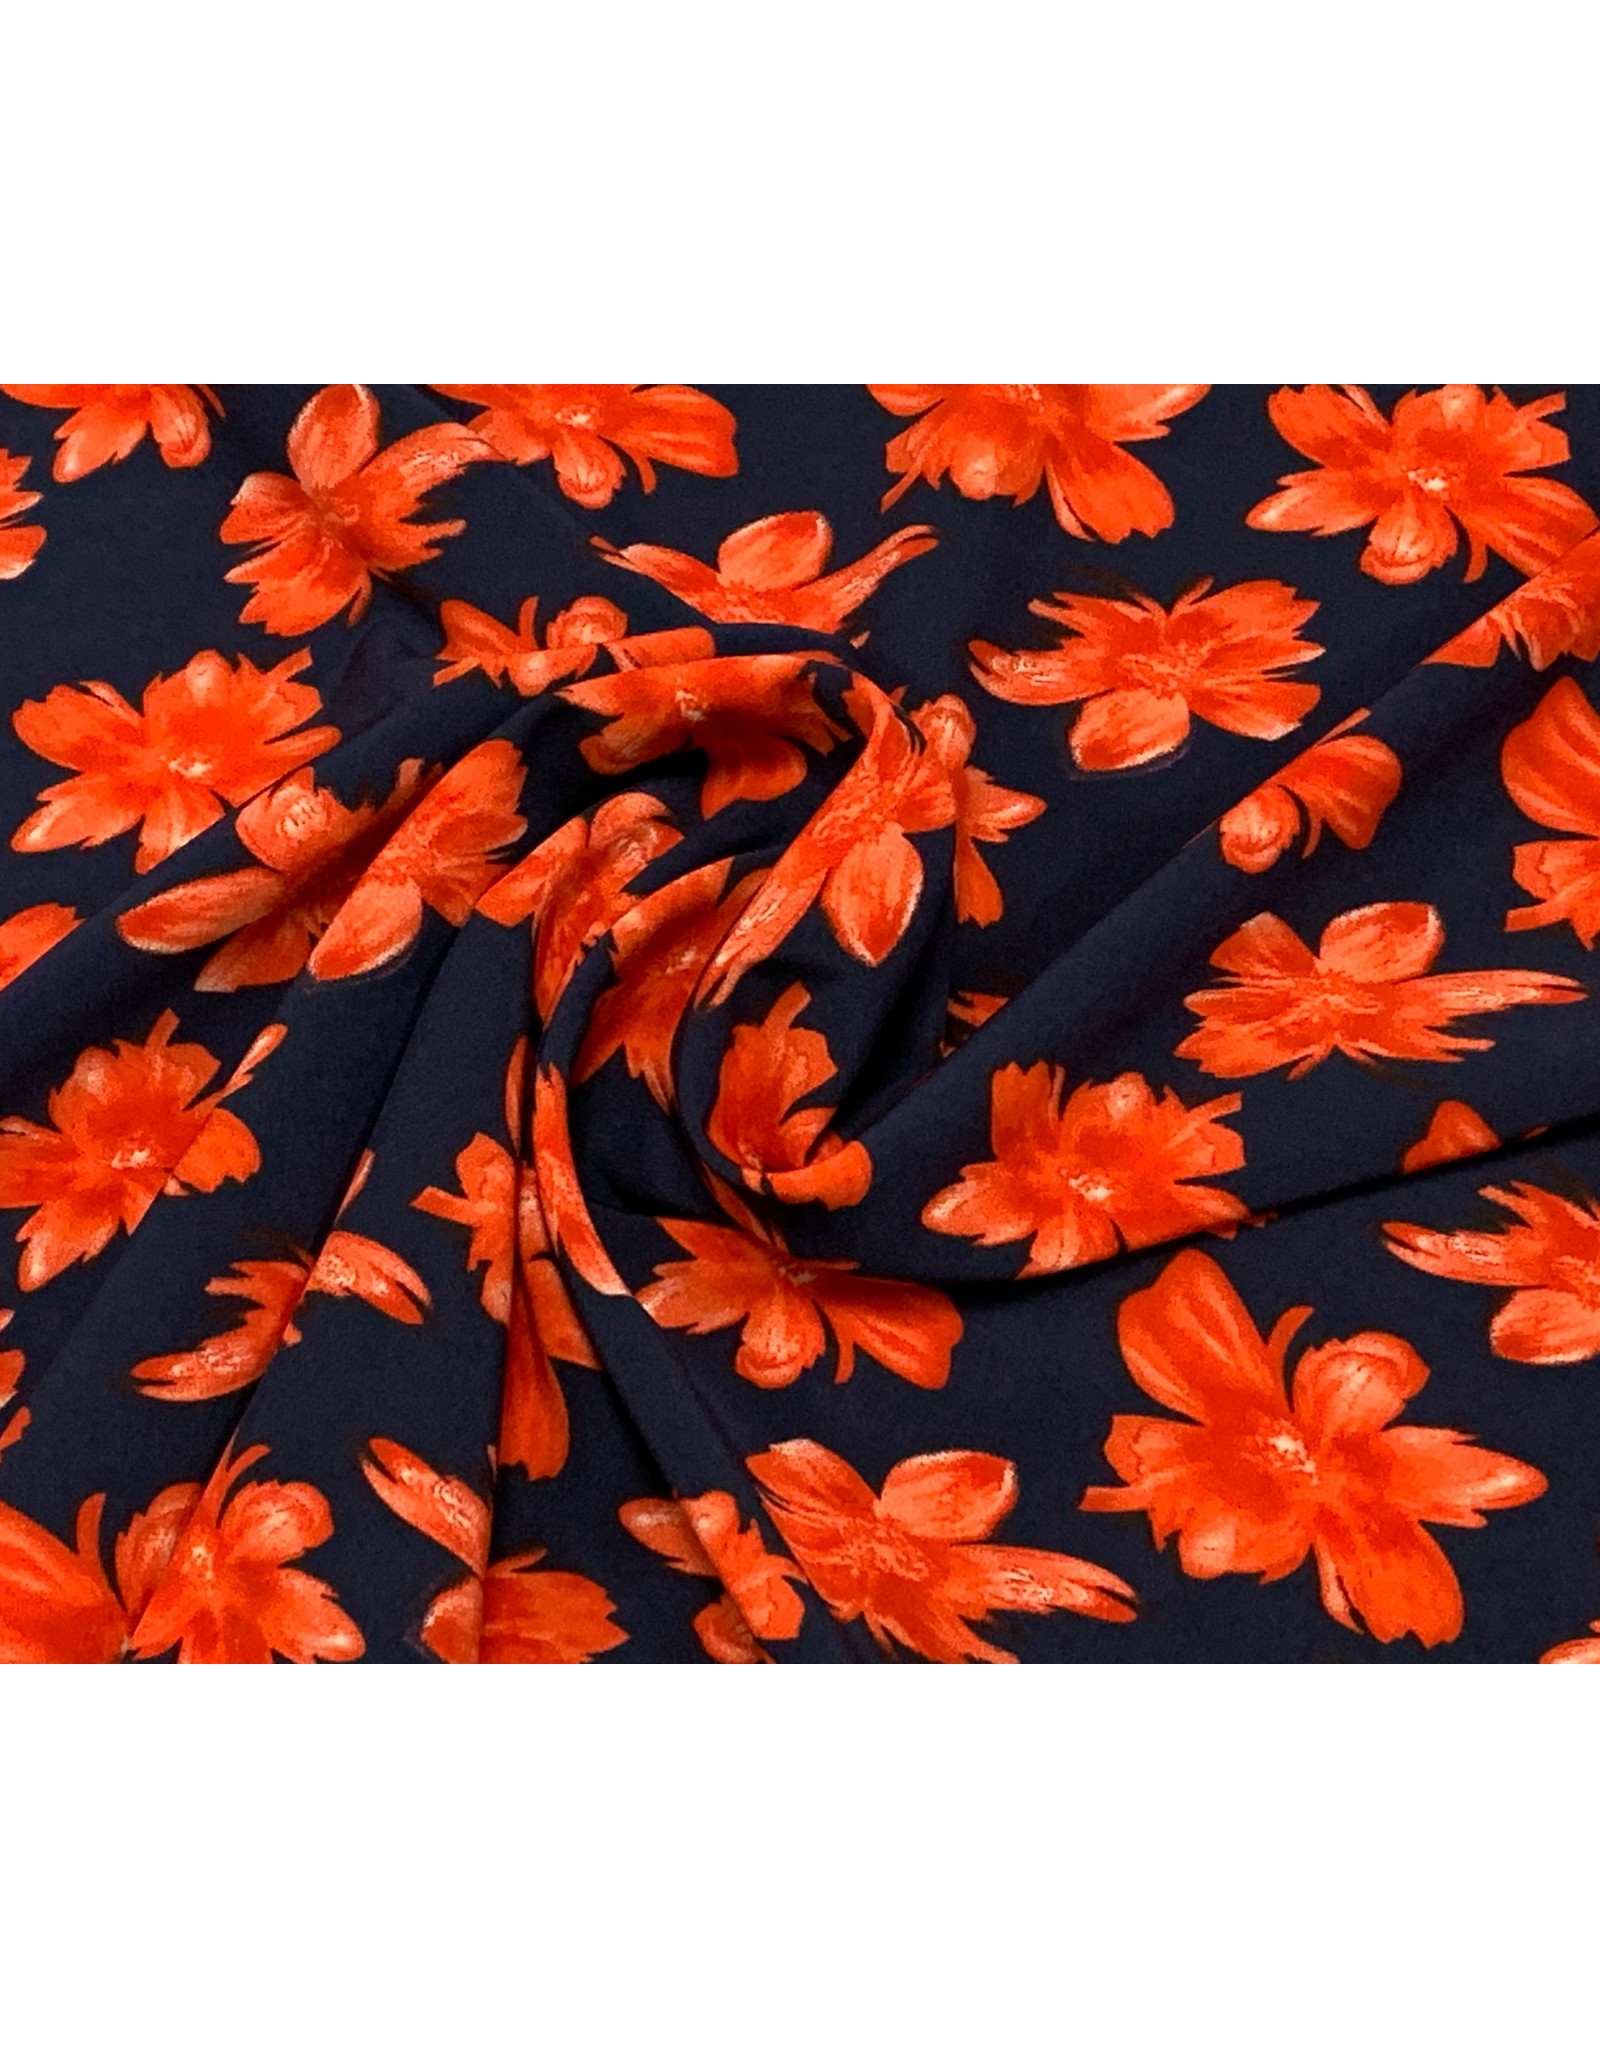 Peach tricot red flowers navy